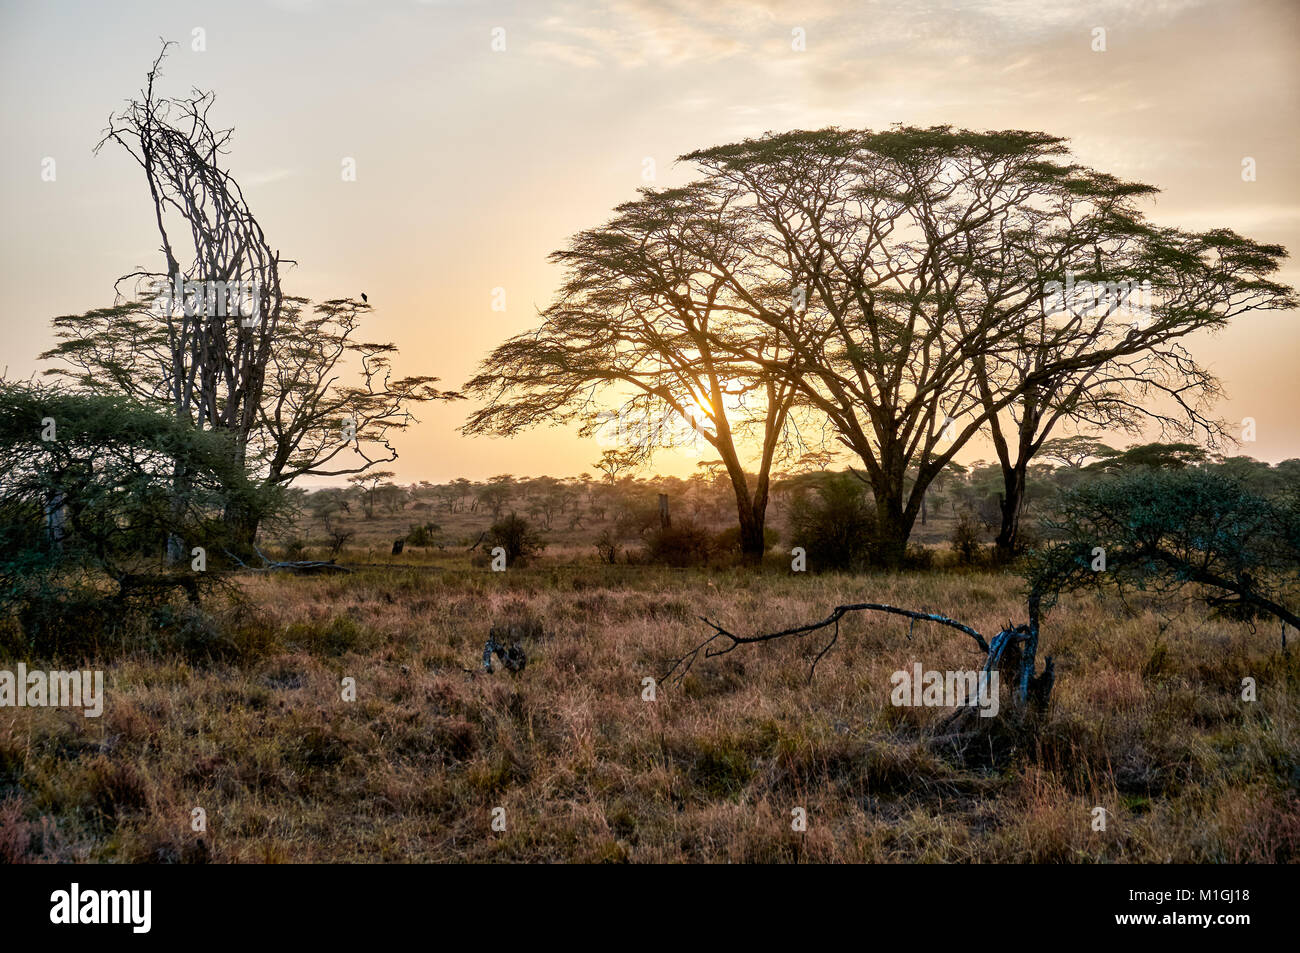 sunrise in Serengeti National Park, UNESCO world heritage site, Tanzania, Africa - Stock Image